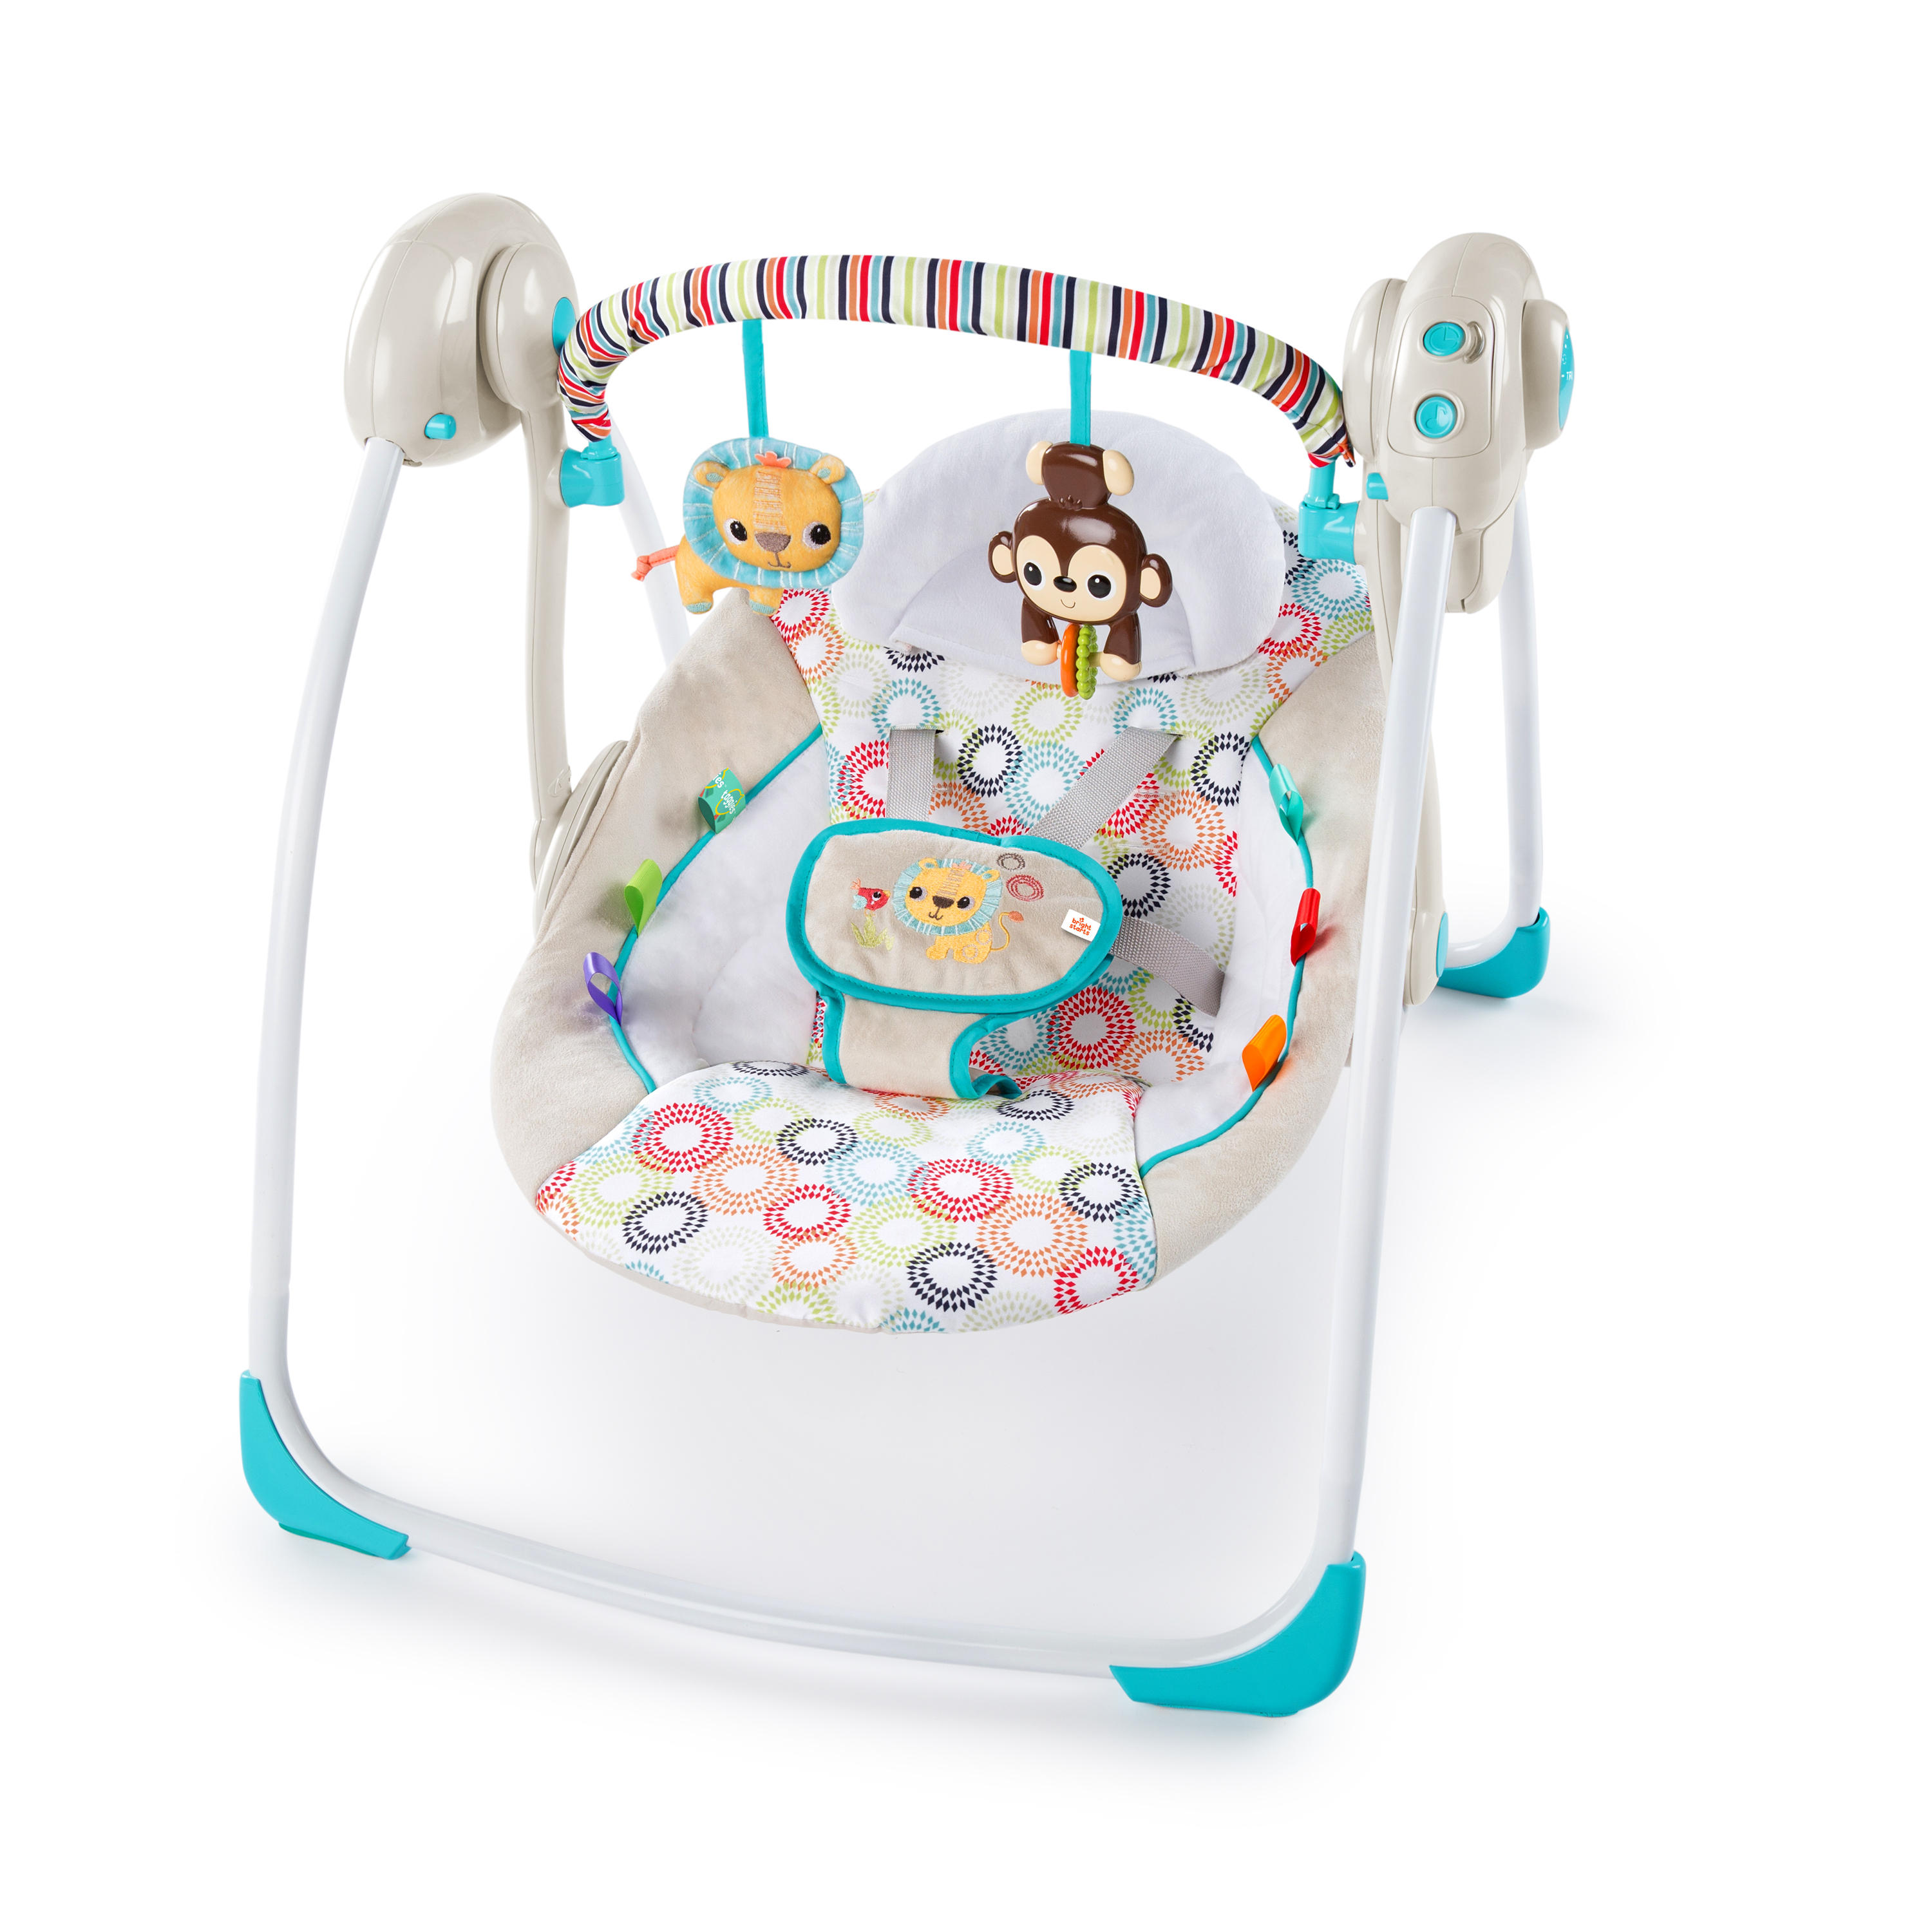 Bright Starts Portable Swing - Petite Jungle